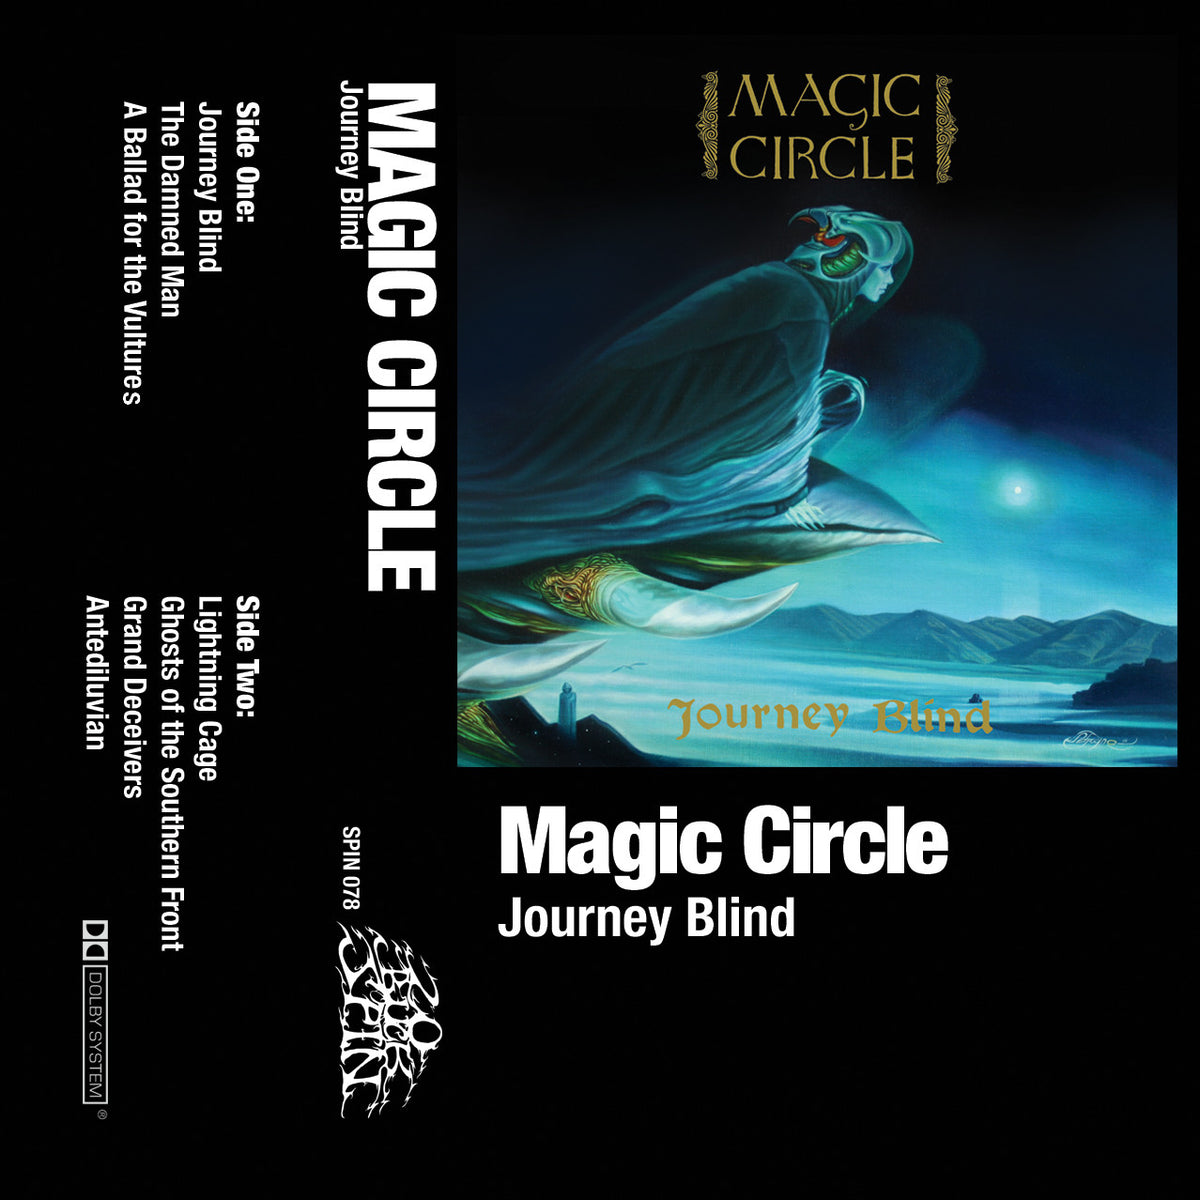 Magic Circle Journey Blind Tape 20 Buck Spin